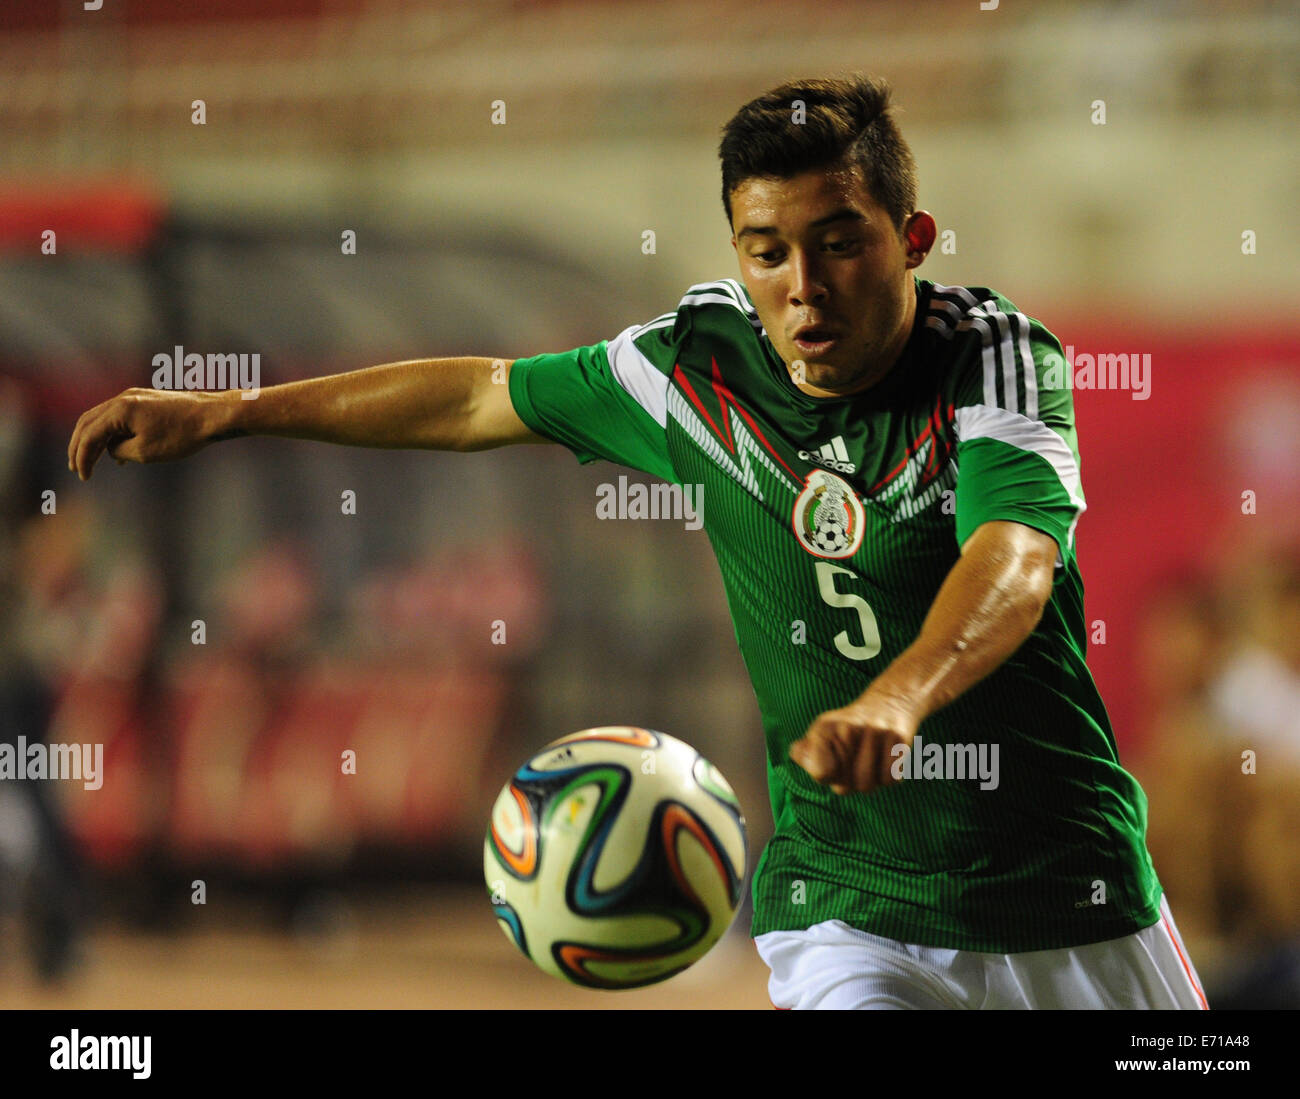 Xi'an, China's Shaanxi Province. 3rd Sep, 2014. Mexican U19 team's Gutierrez Rusel breaks through during - Stock Image